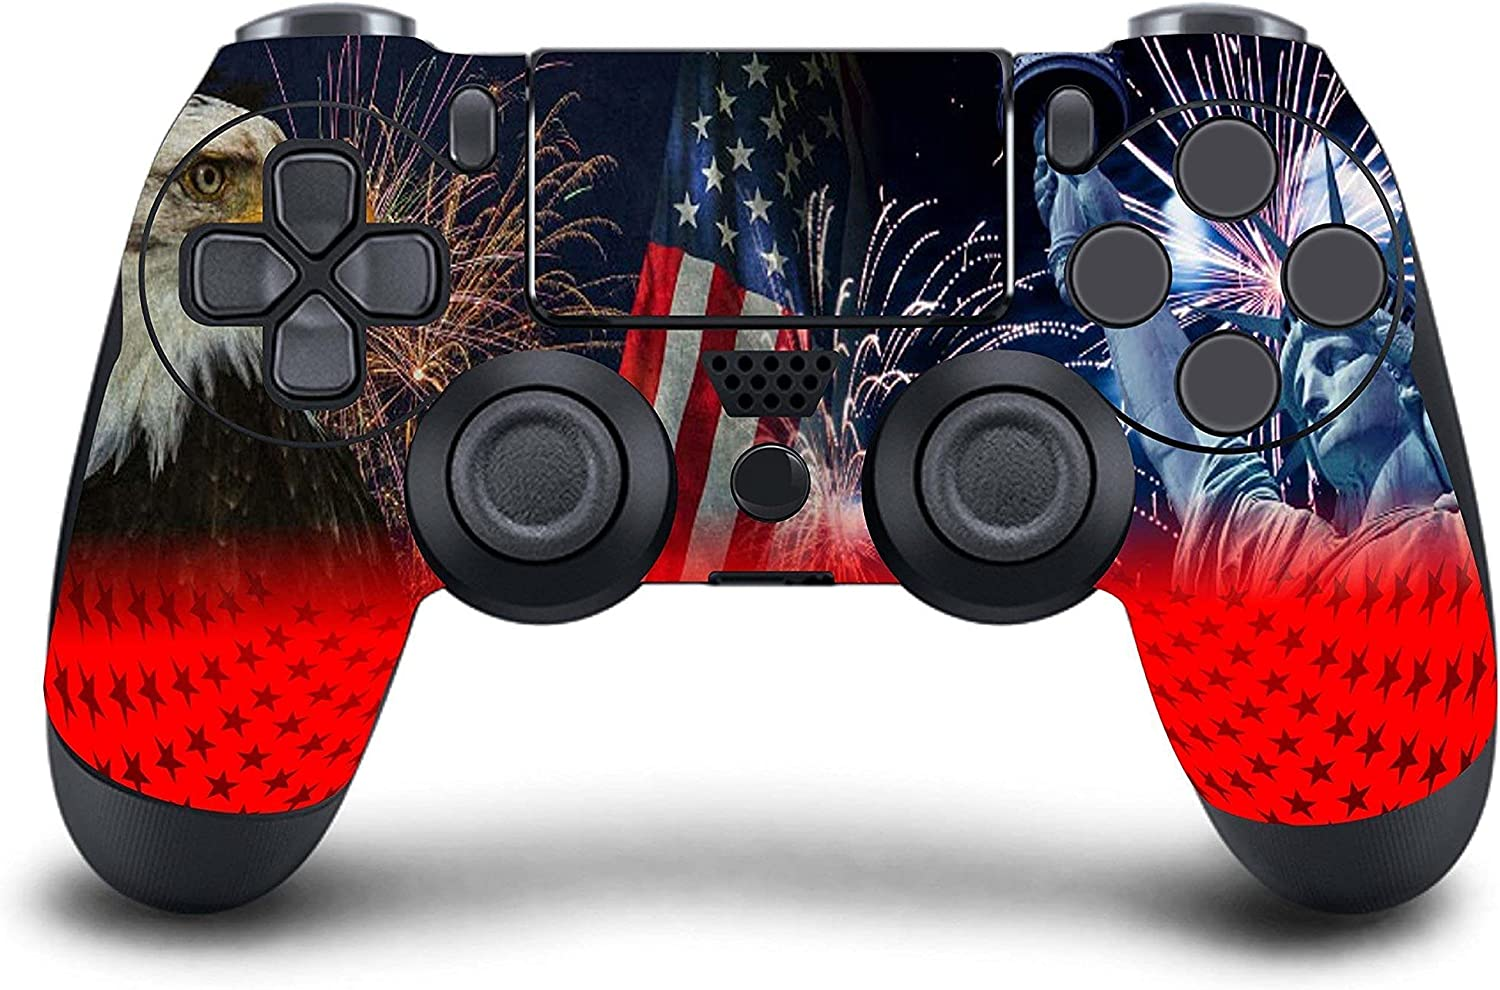 Original DreamController Wireless Controller Made for Playstation 4 Controller I Customized for PS4 Remote Control I Compatible with PS4 Controller Console I PS 4 Controller Wireless